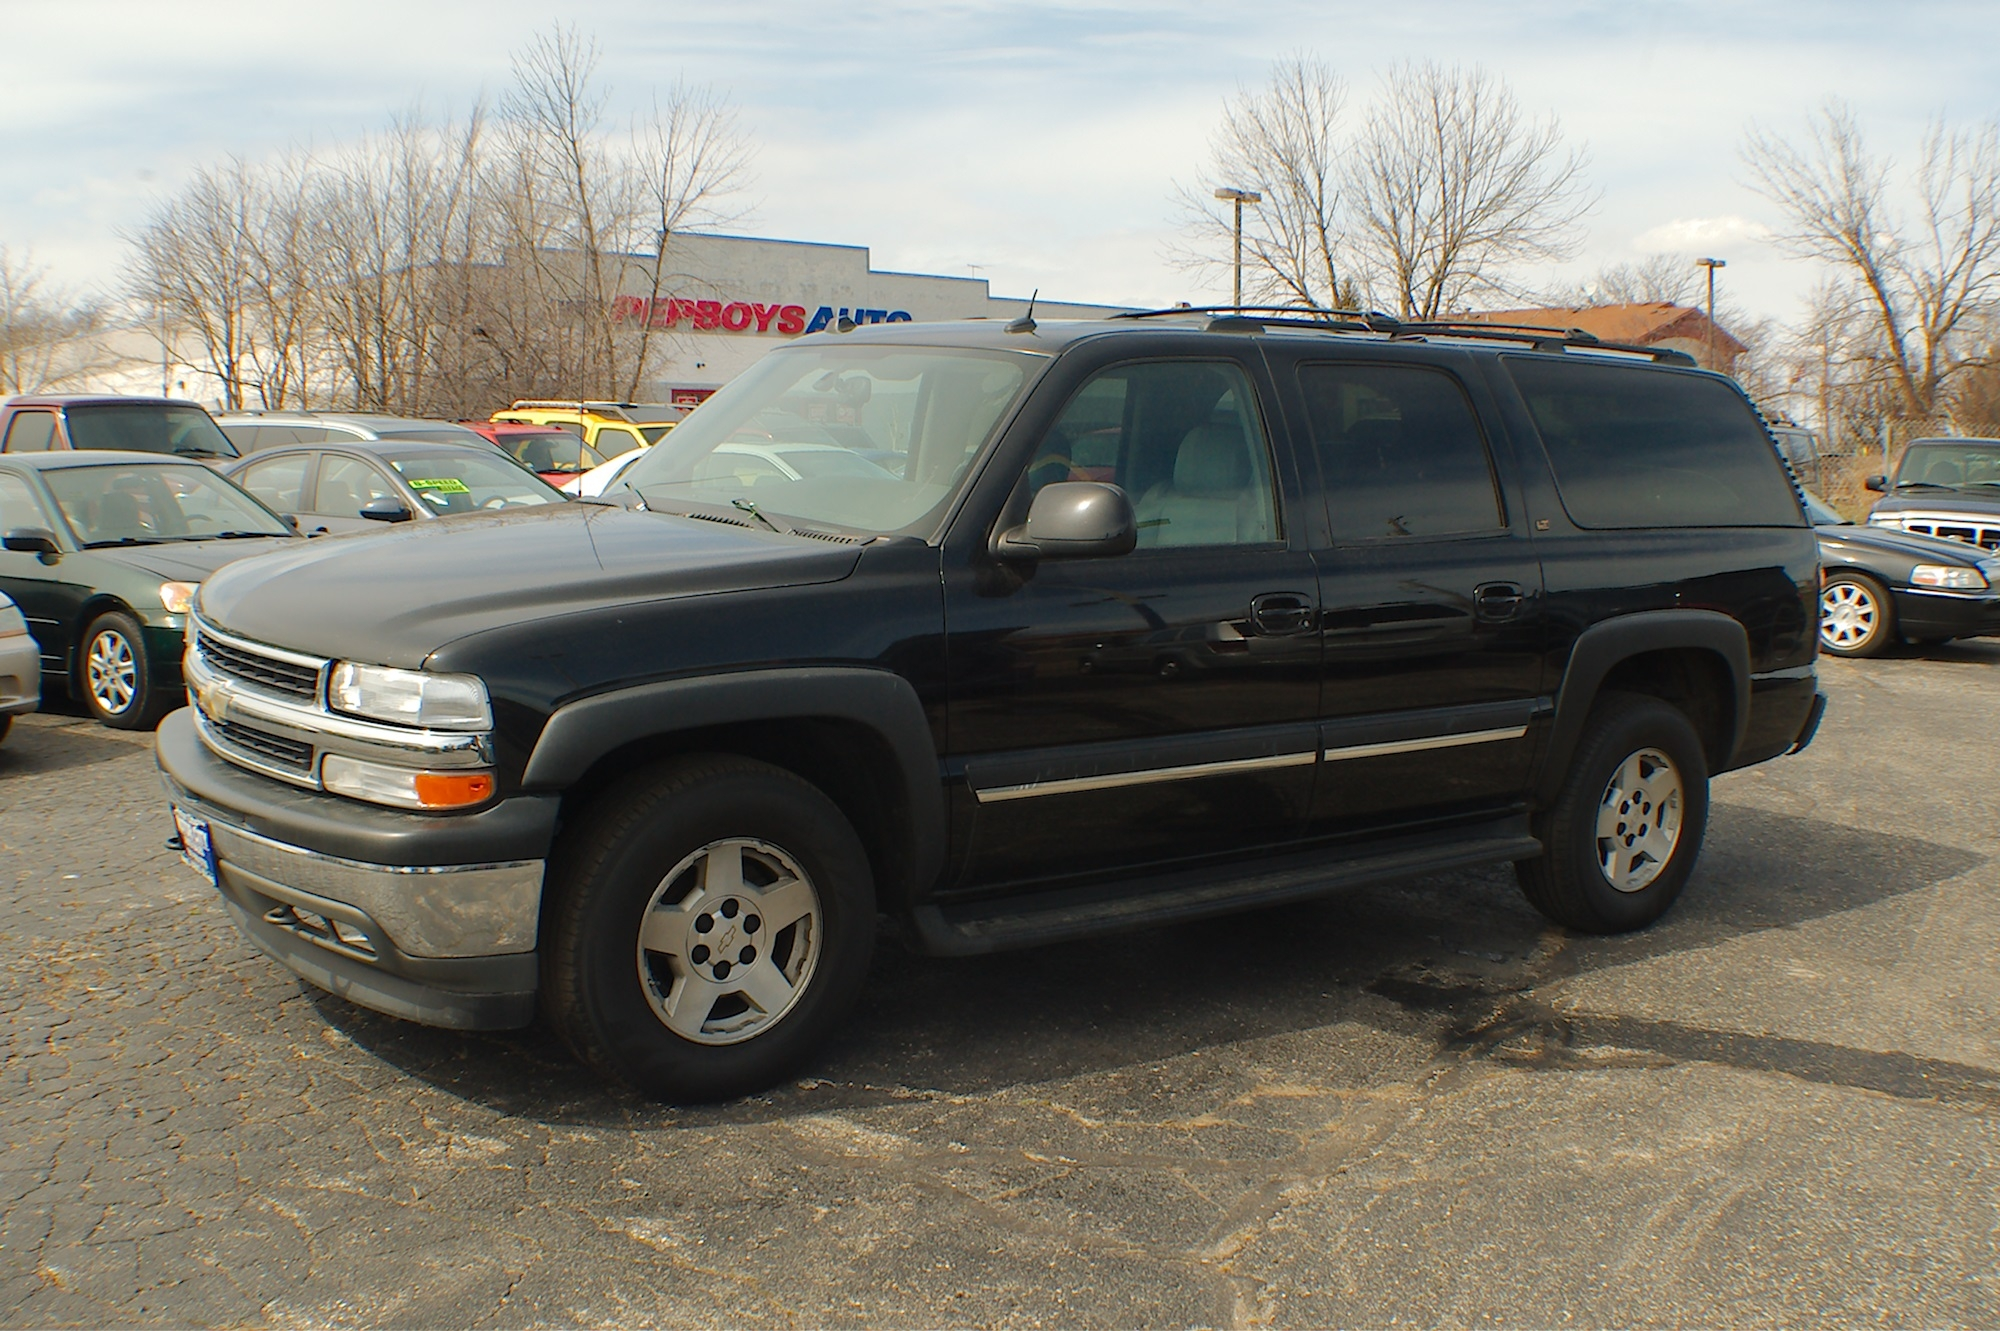 2005 Chevrolet Suburban LT Black 4x4 SUV Sale Antioch Zion Waukegan Lake County Illinois